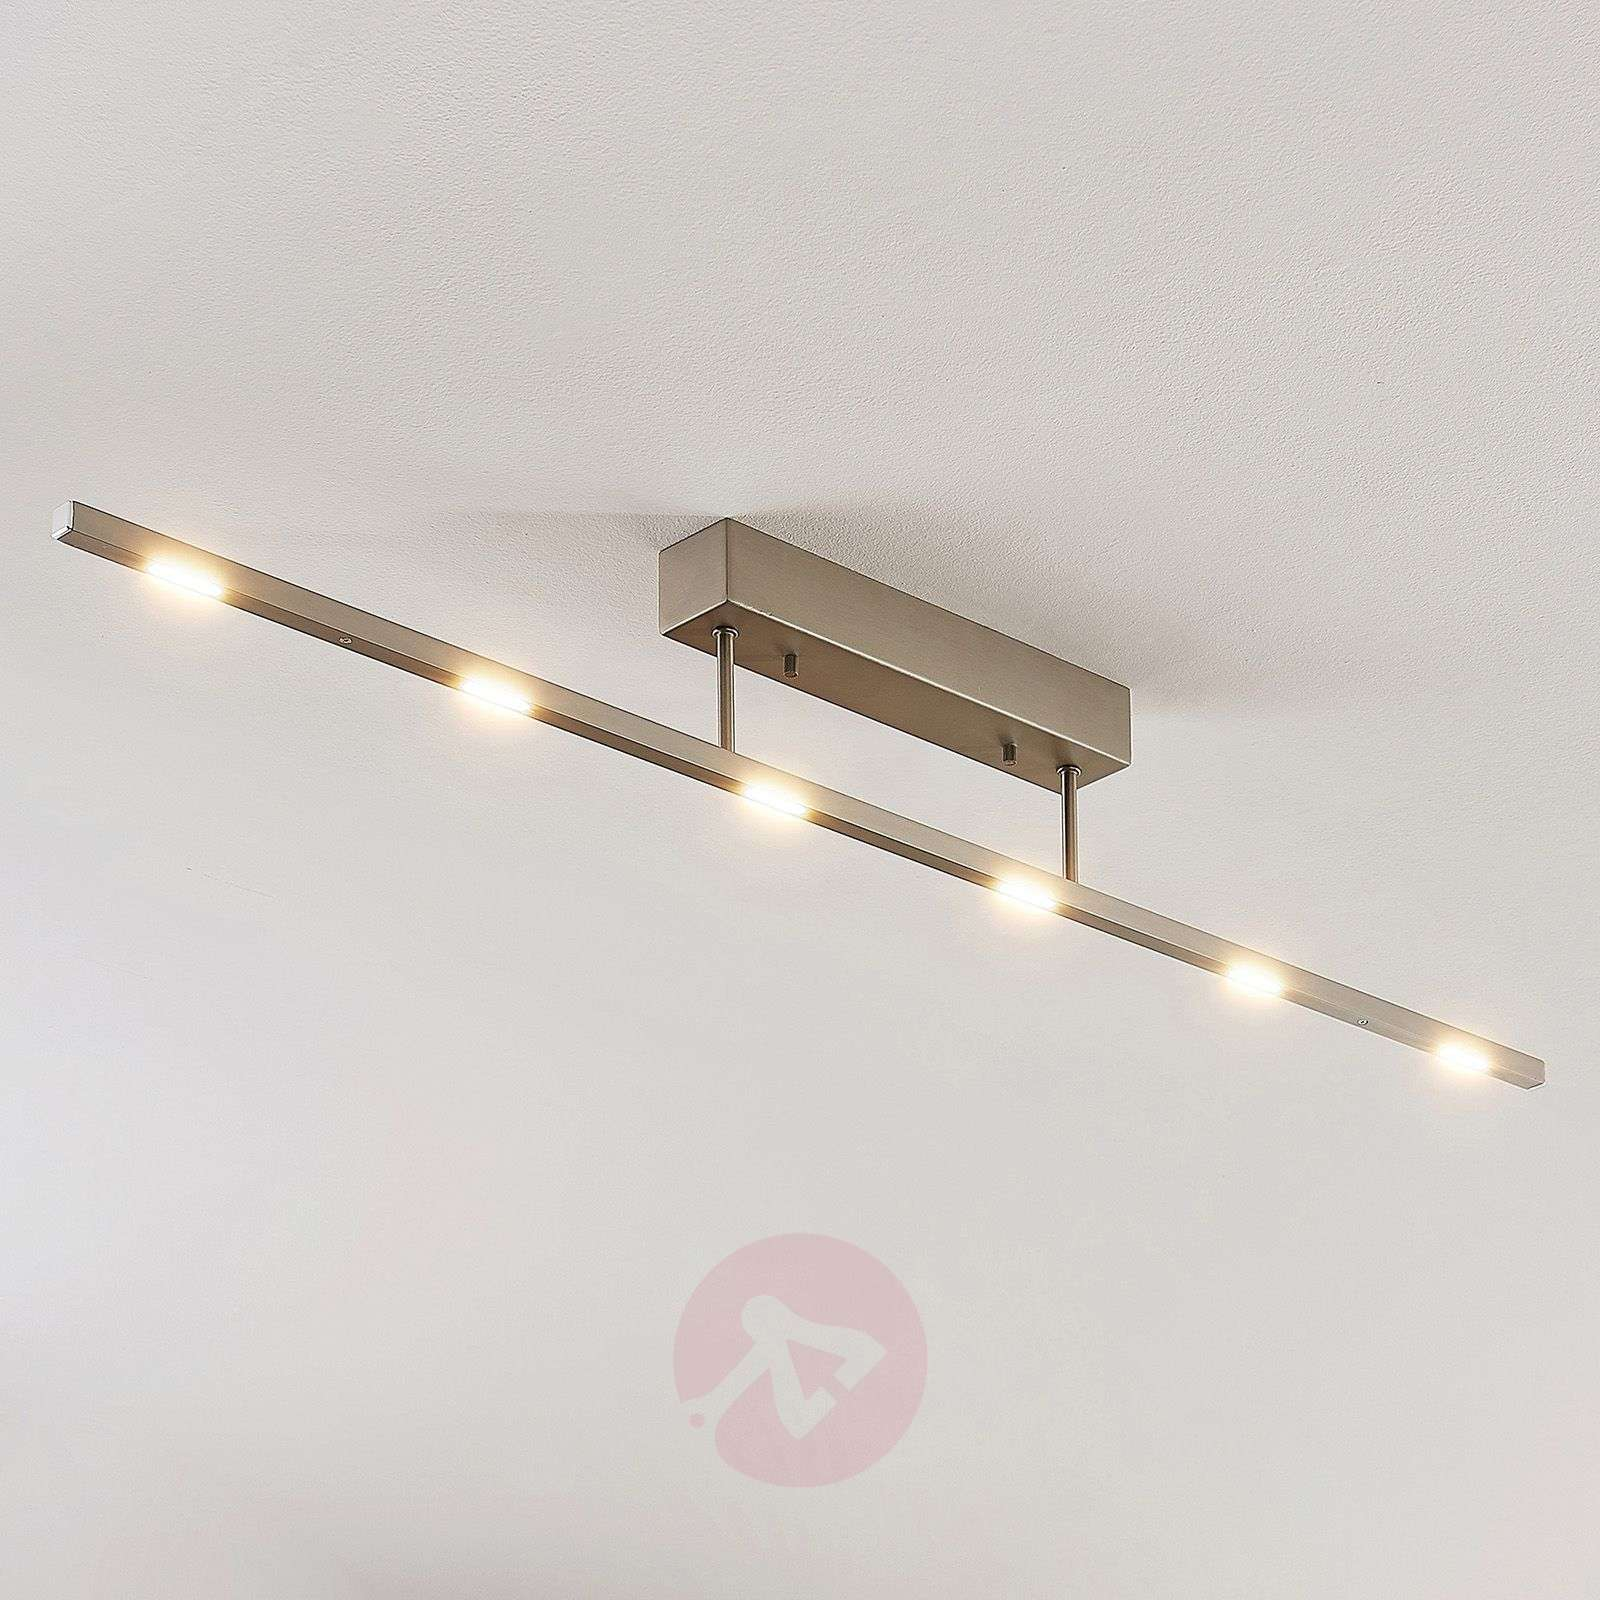 Plafonnier LED Margeau en nickel, dimmable-9624490-01